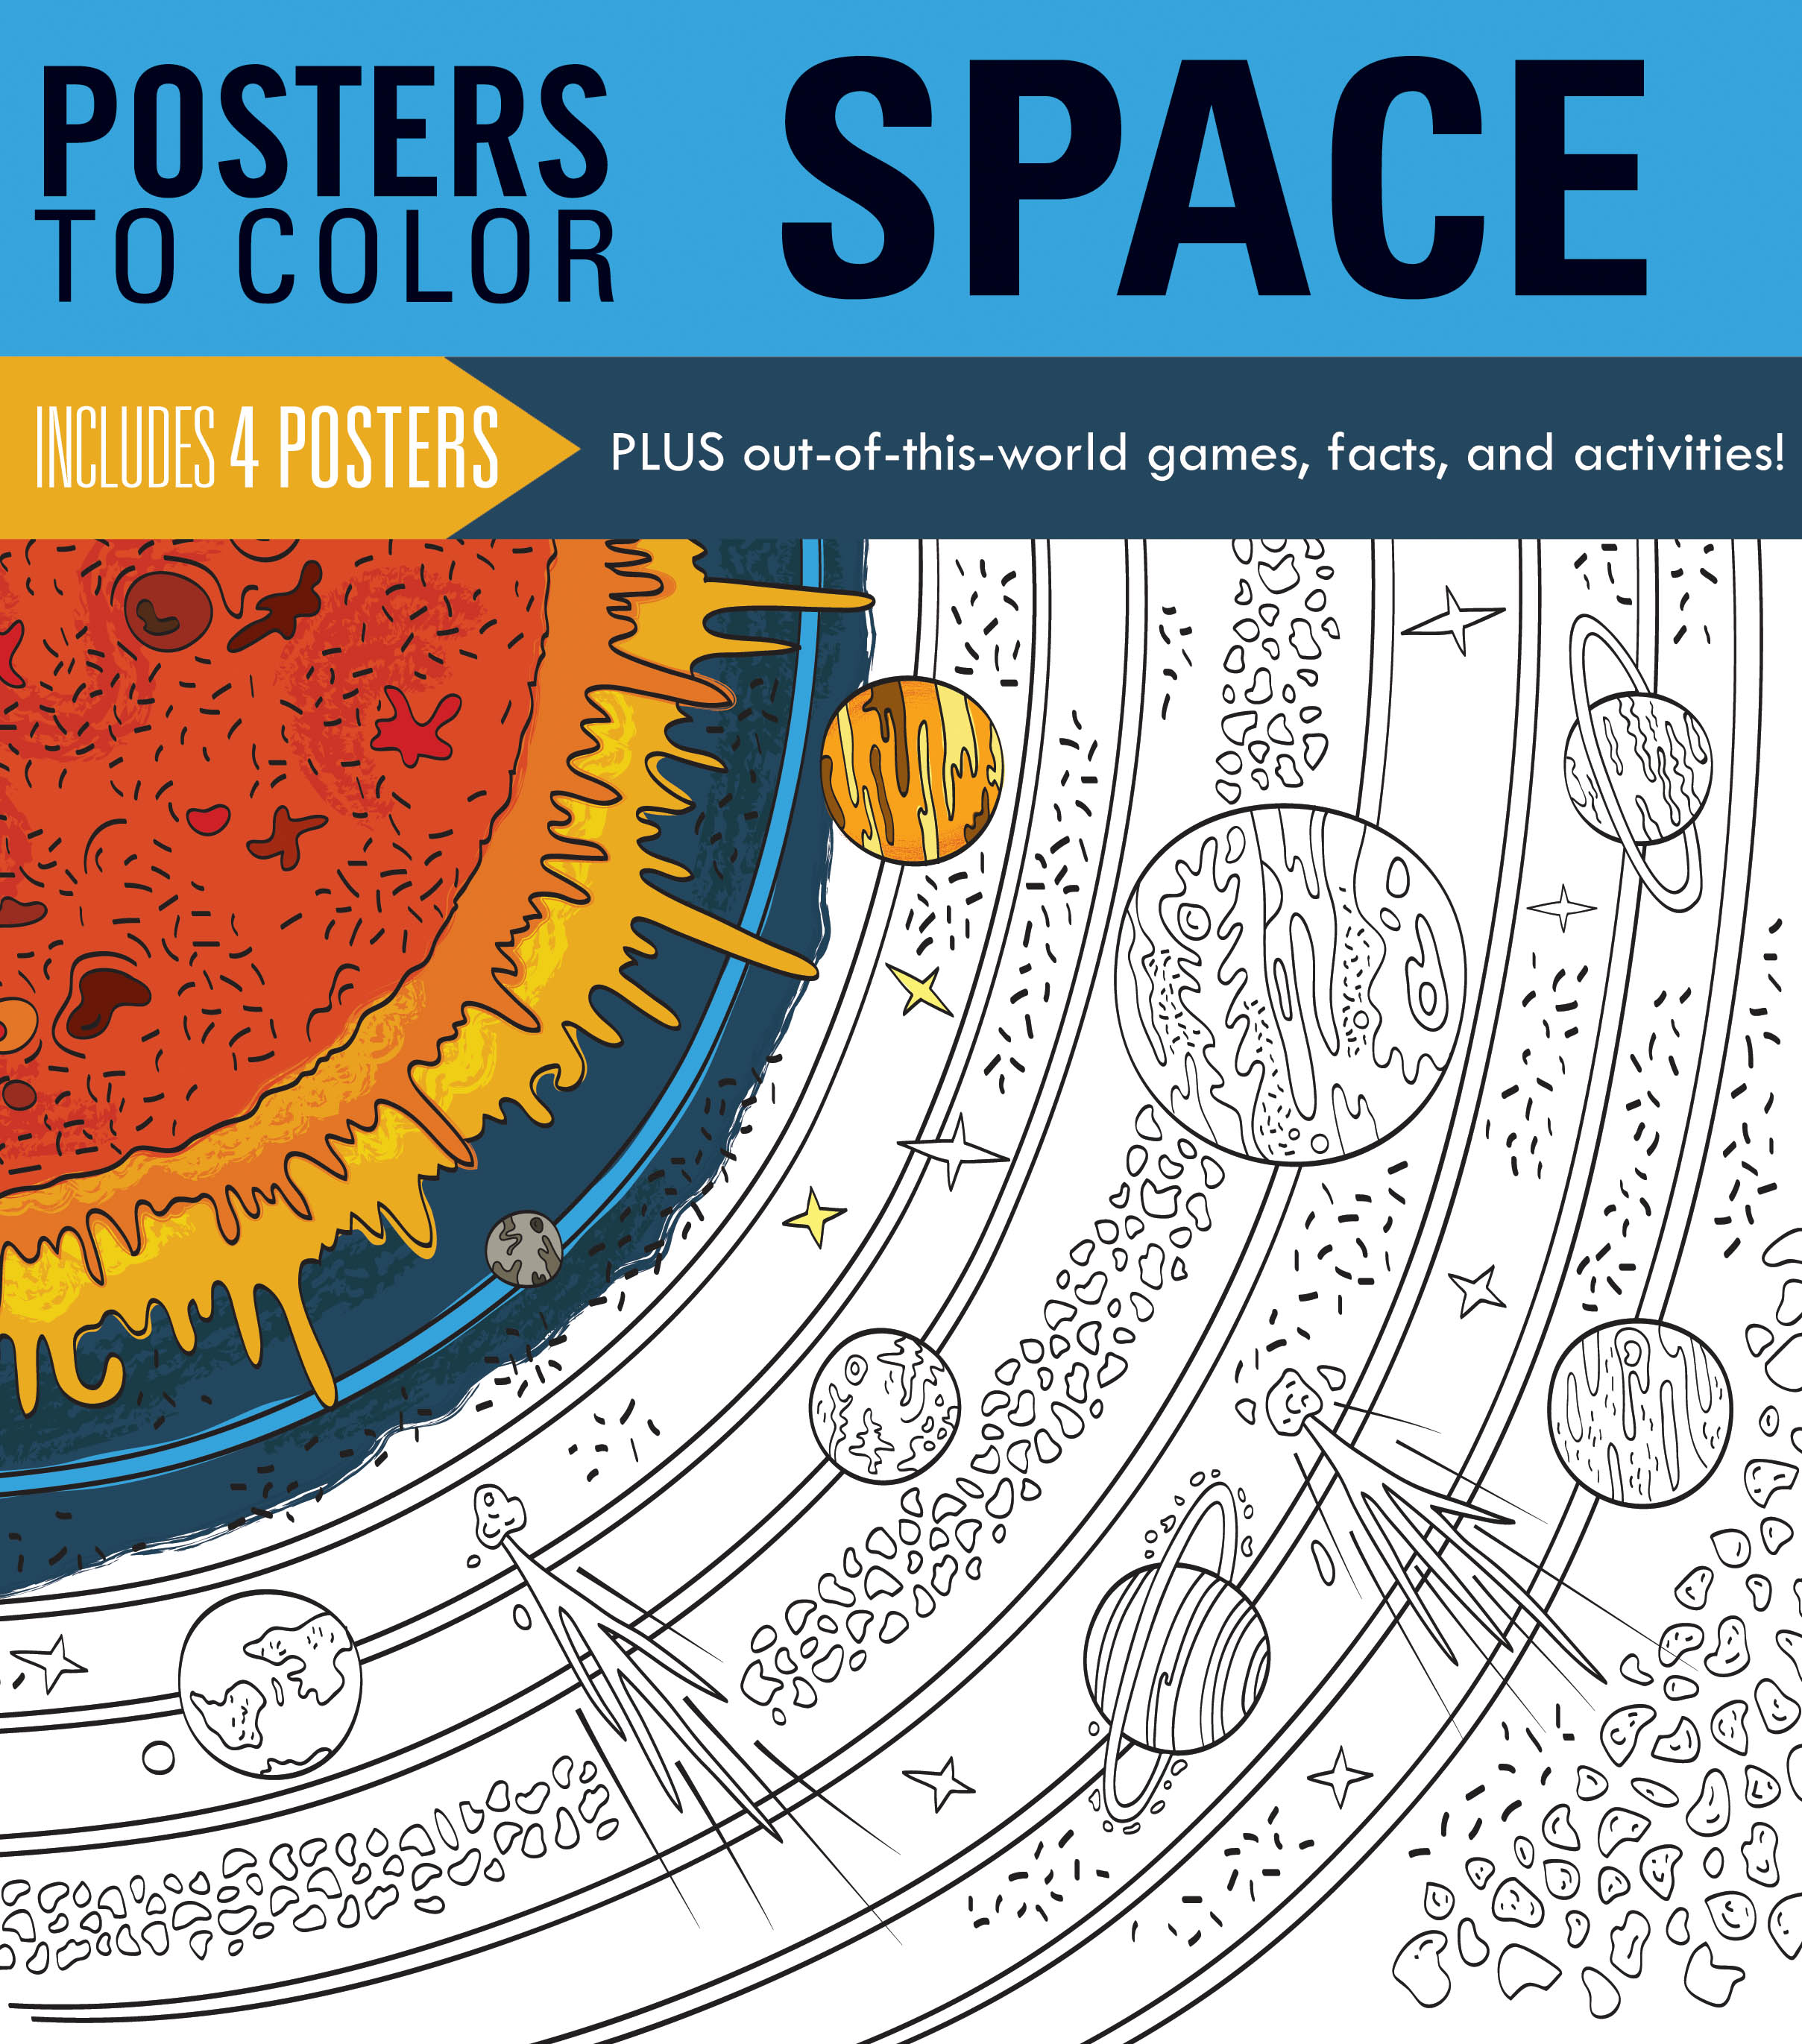 Posters to Color: Space